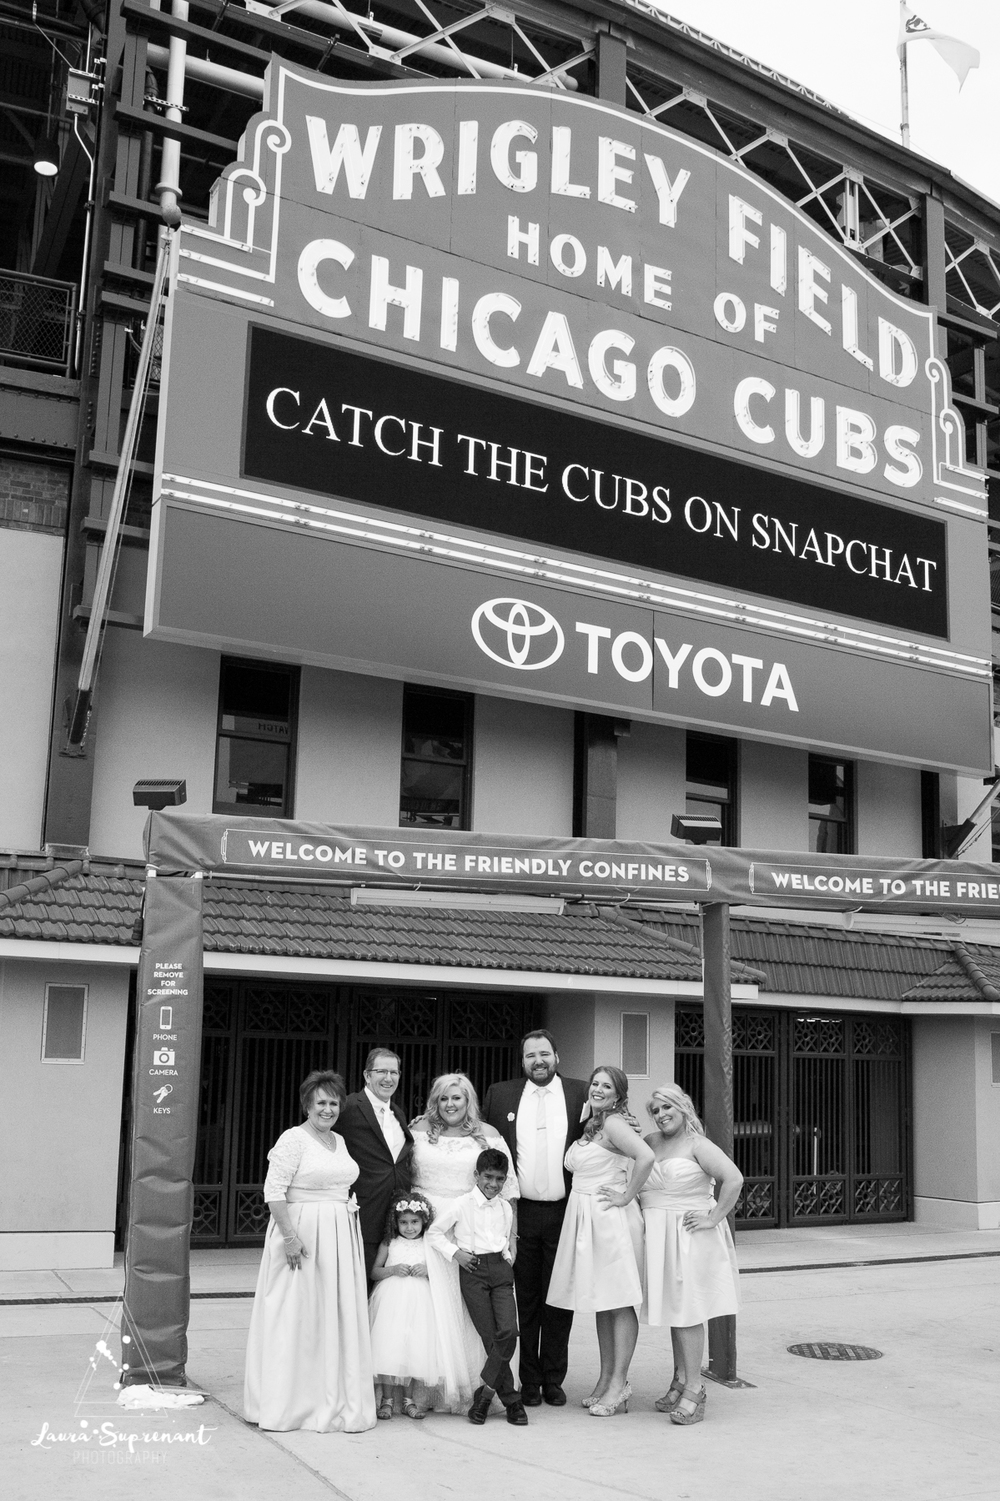 wedding_photography_chicago_wrigley_field_ravenswood_event_center_laura_suprenant (39 of 82).jpg